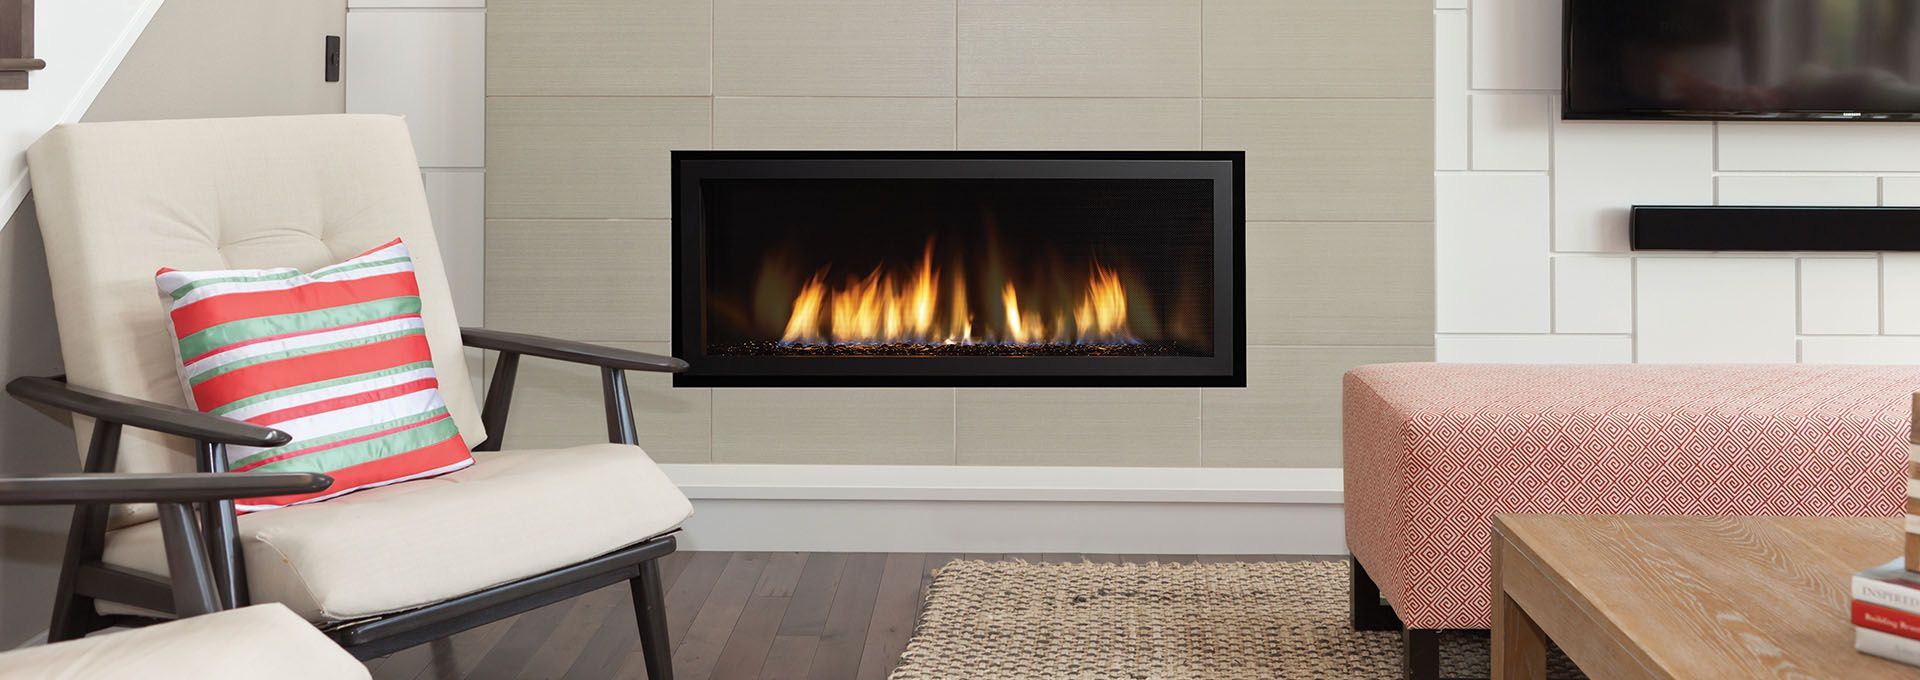 Awesome 10 Perfect Gas Fireplace Insert Reviews For Your Cozy Home In 2017 Contemporary Gas Fireplace Gas Fireplace Contemporary Fireplace